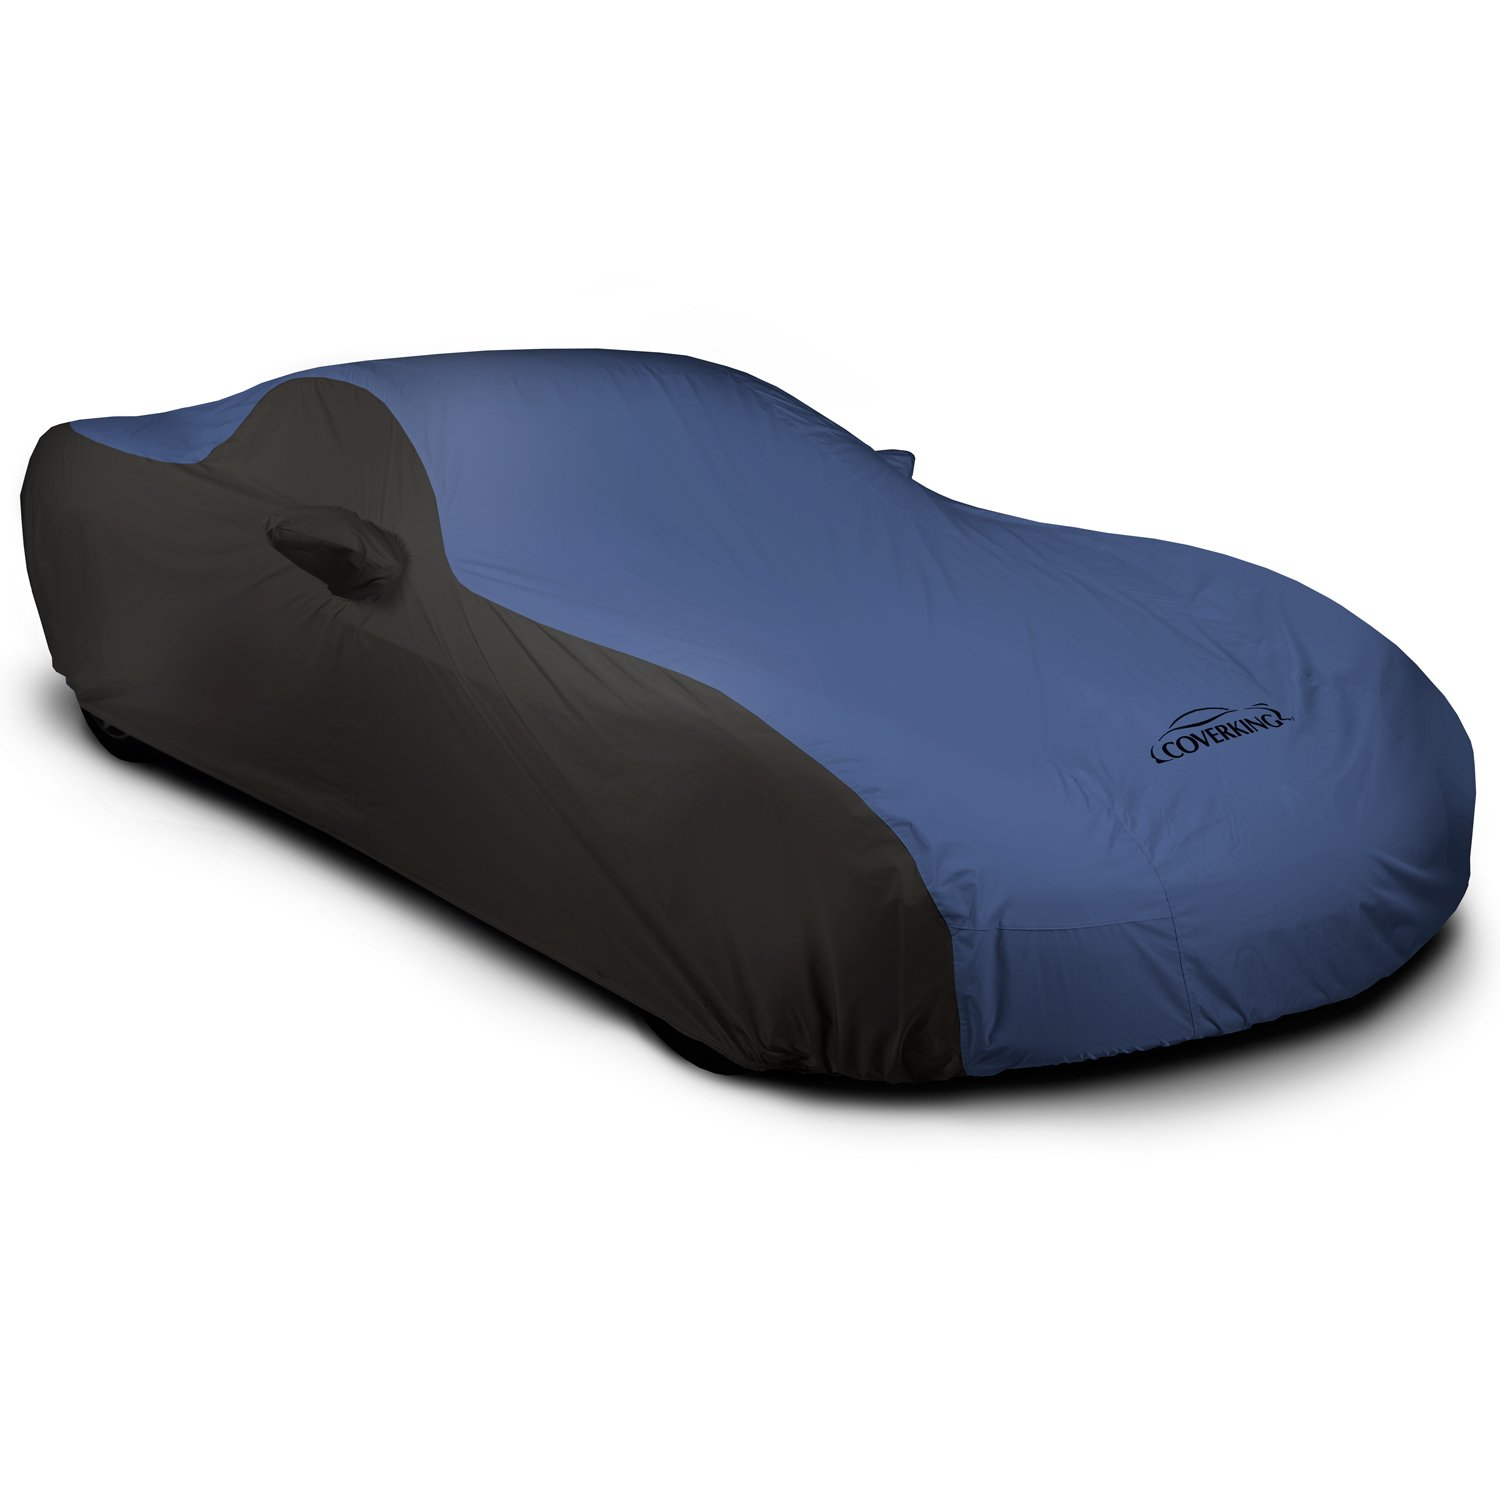 Bmw Z4 Car Cover: Coverking Custom Fit Car Cover For Select Bmw Z4 Models